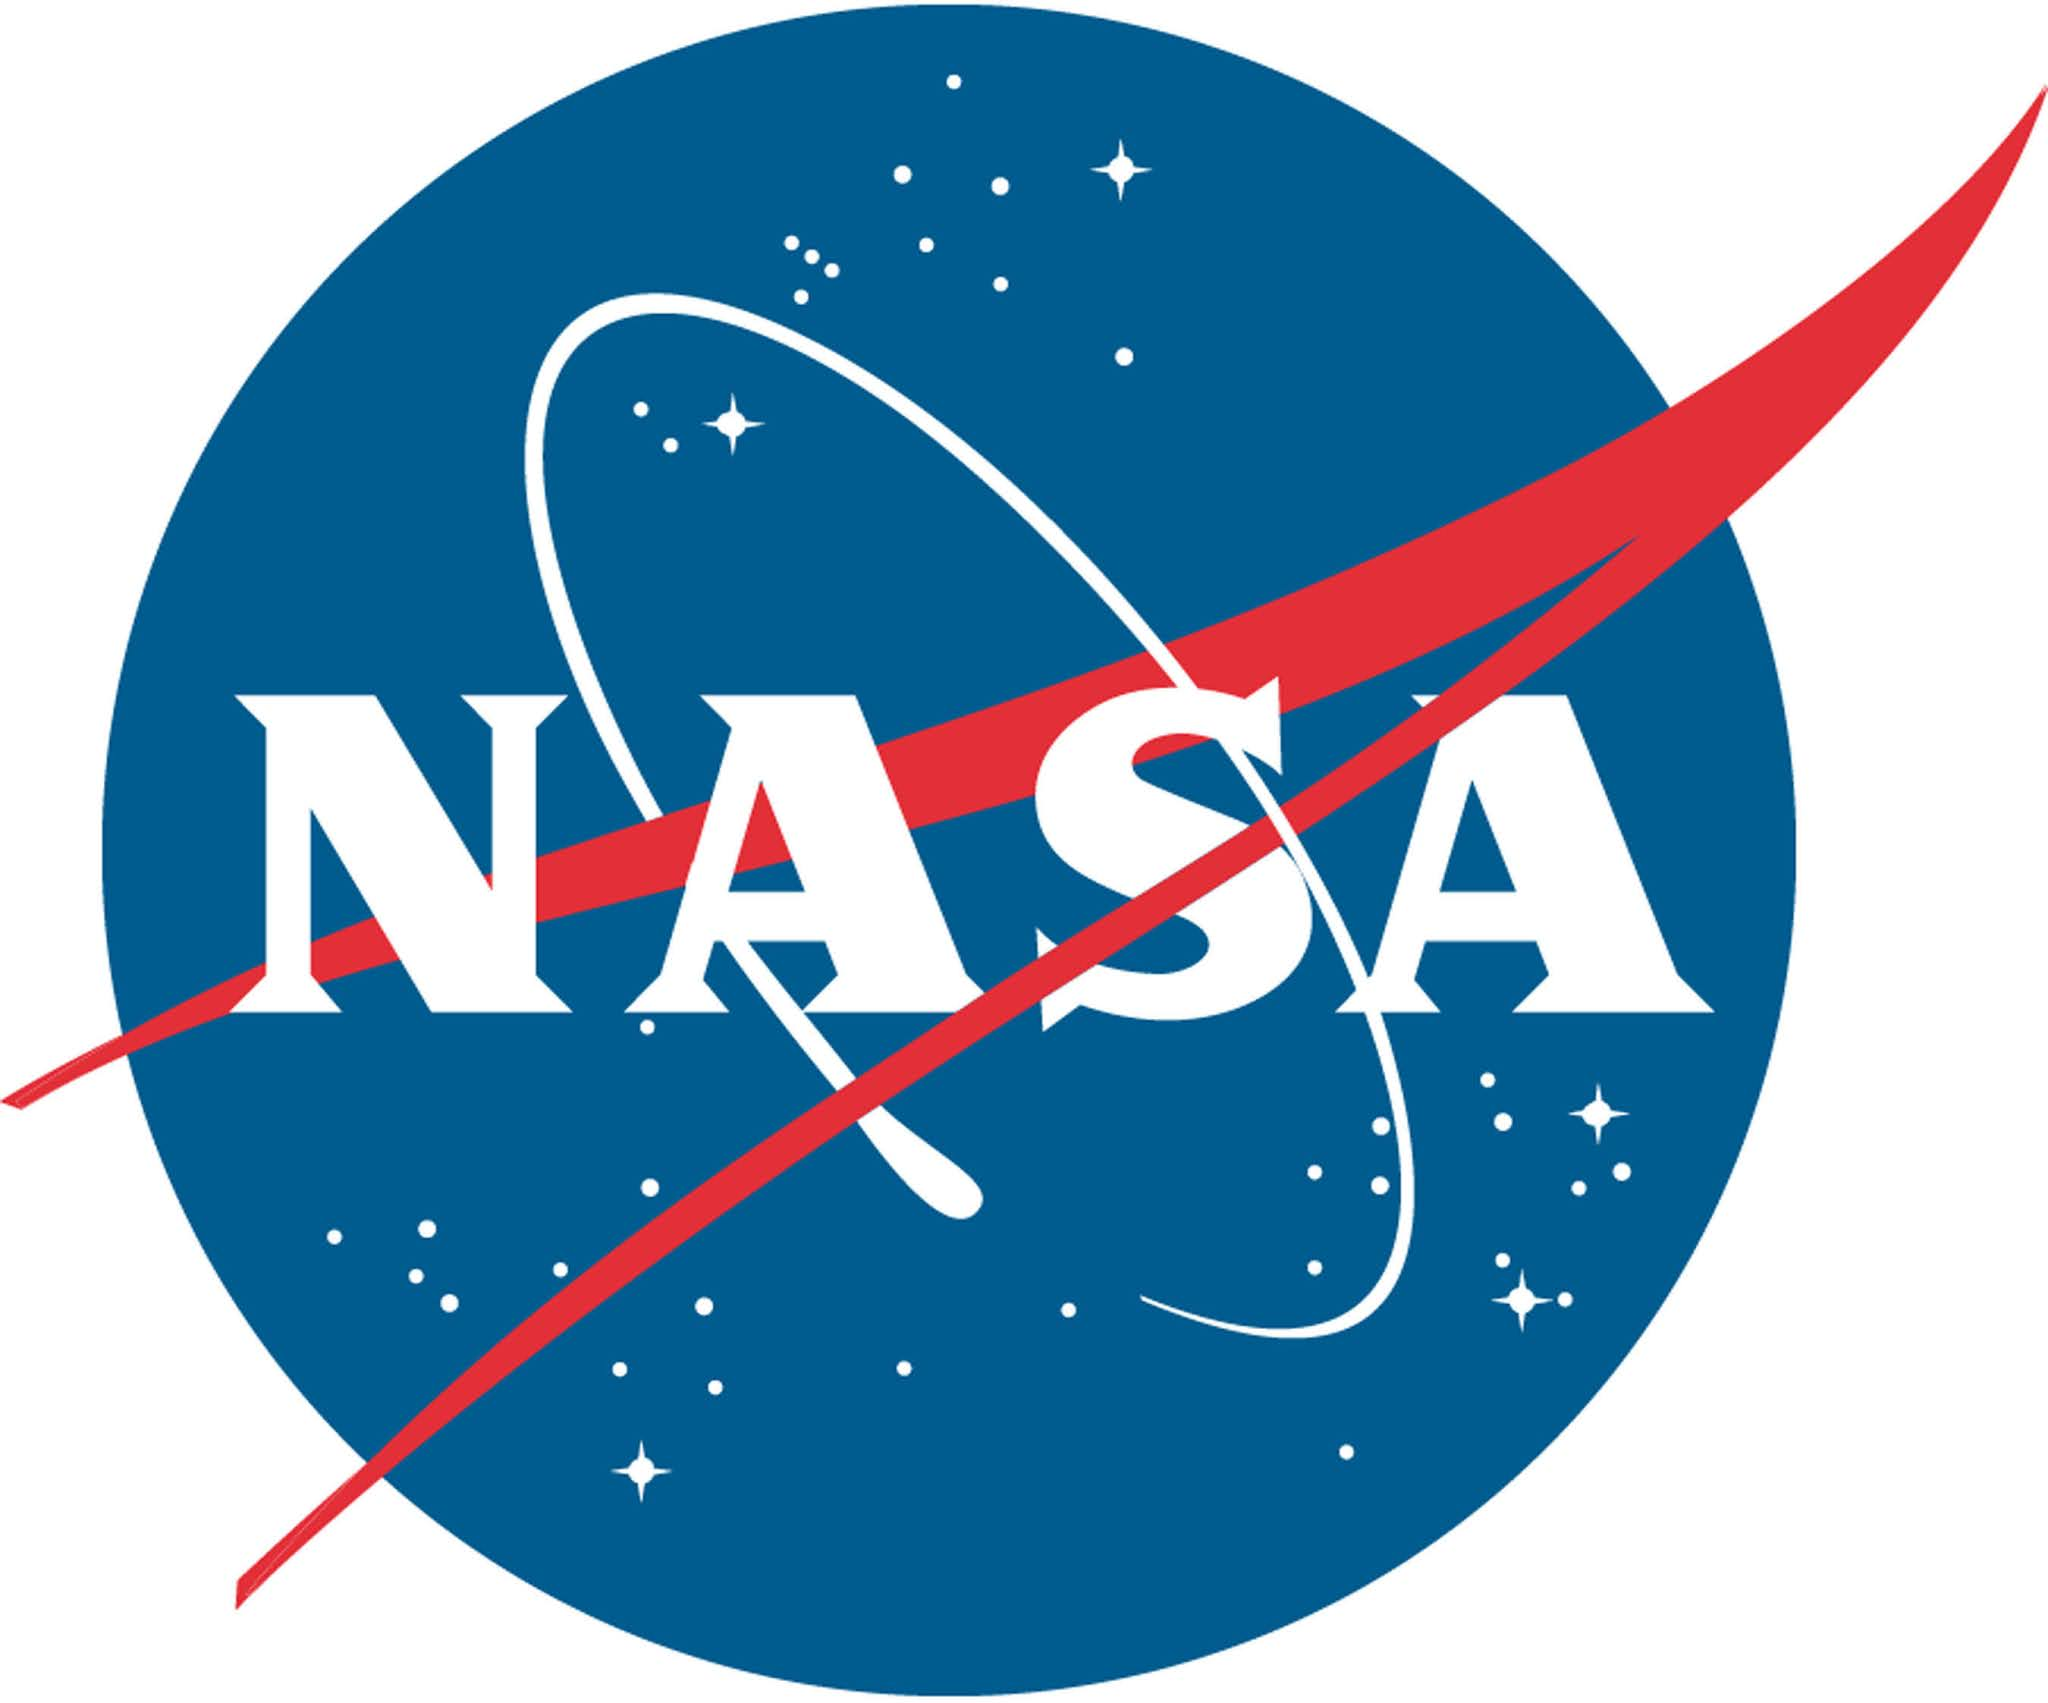 NASA Highlights Astrophysics Missions at 'Super Bowl of Astronomy'